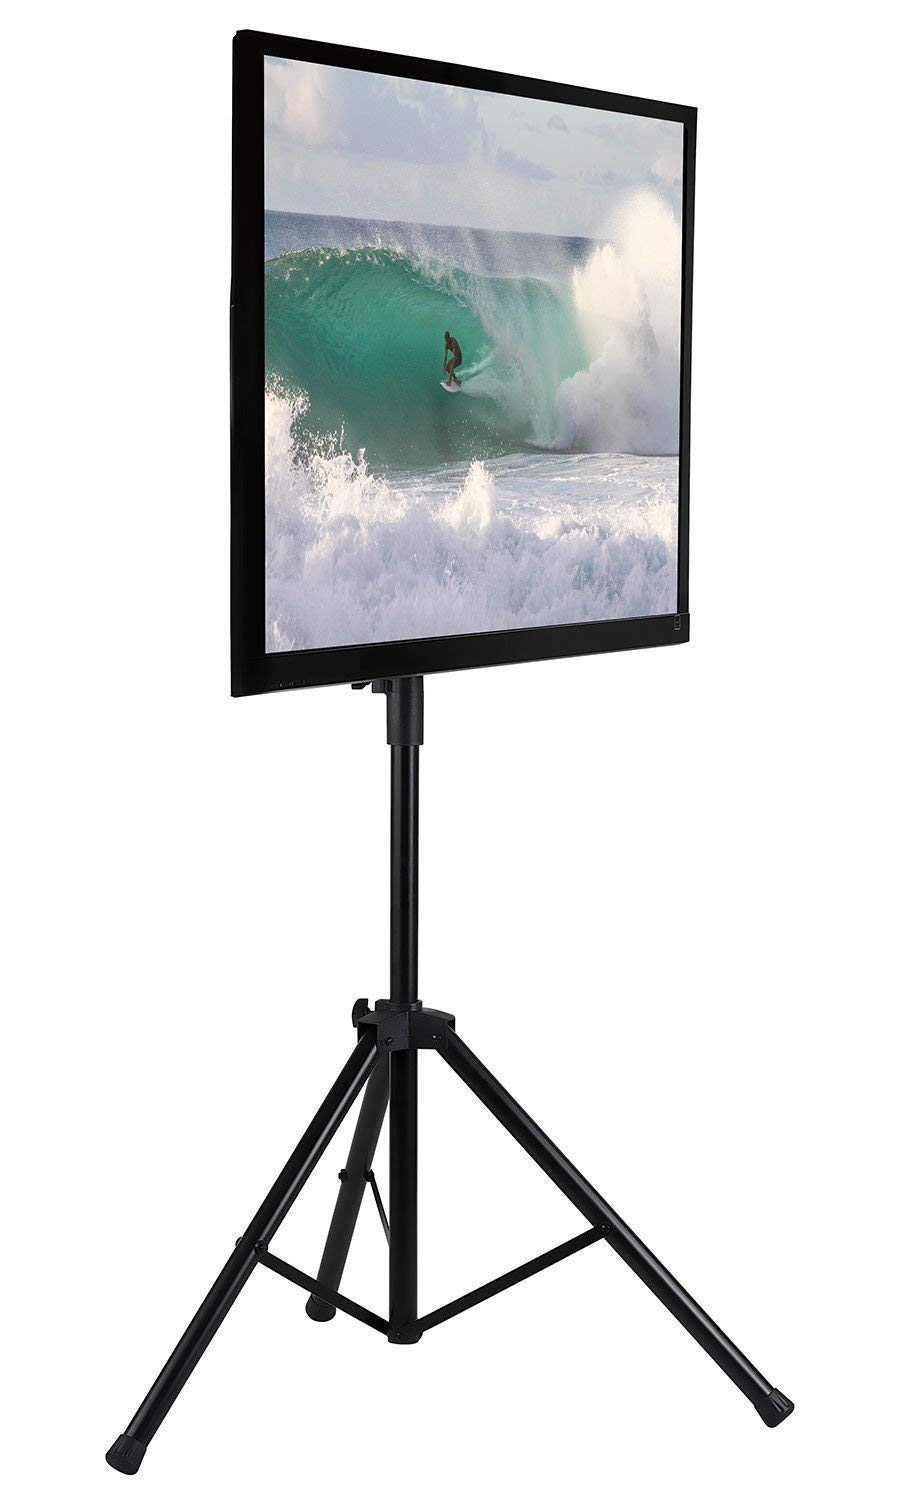 Mount-It! LCD Flat Panel TV Tripod, Portable TV Stand Fits LCD LED Flat  Screen TV sizes 32-70 inch, Adjustable Height Pole, Supports up to 77 lbs  and